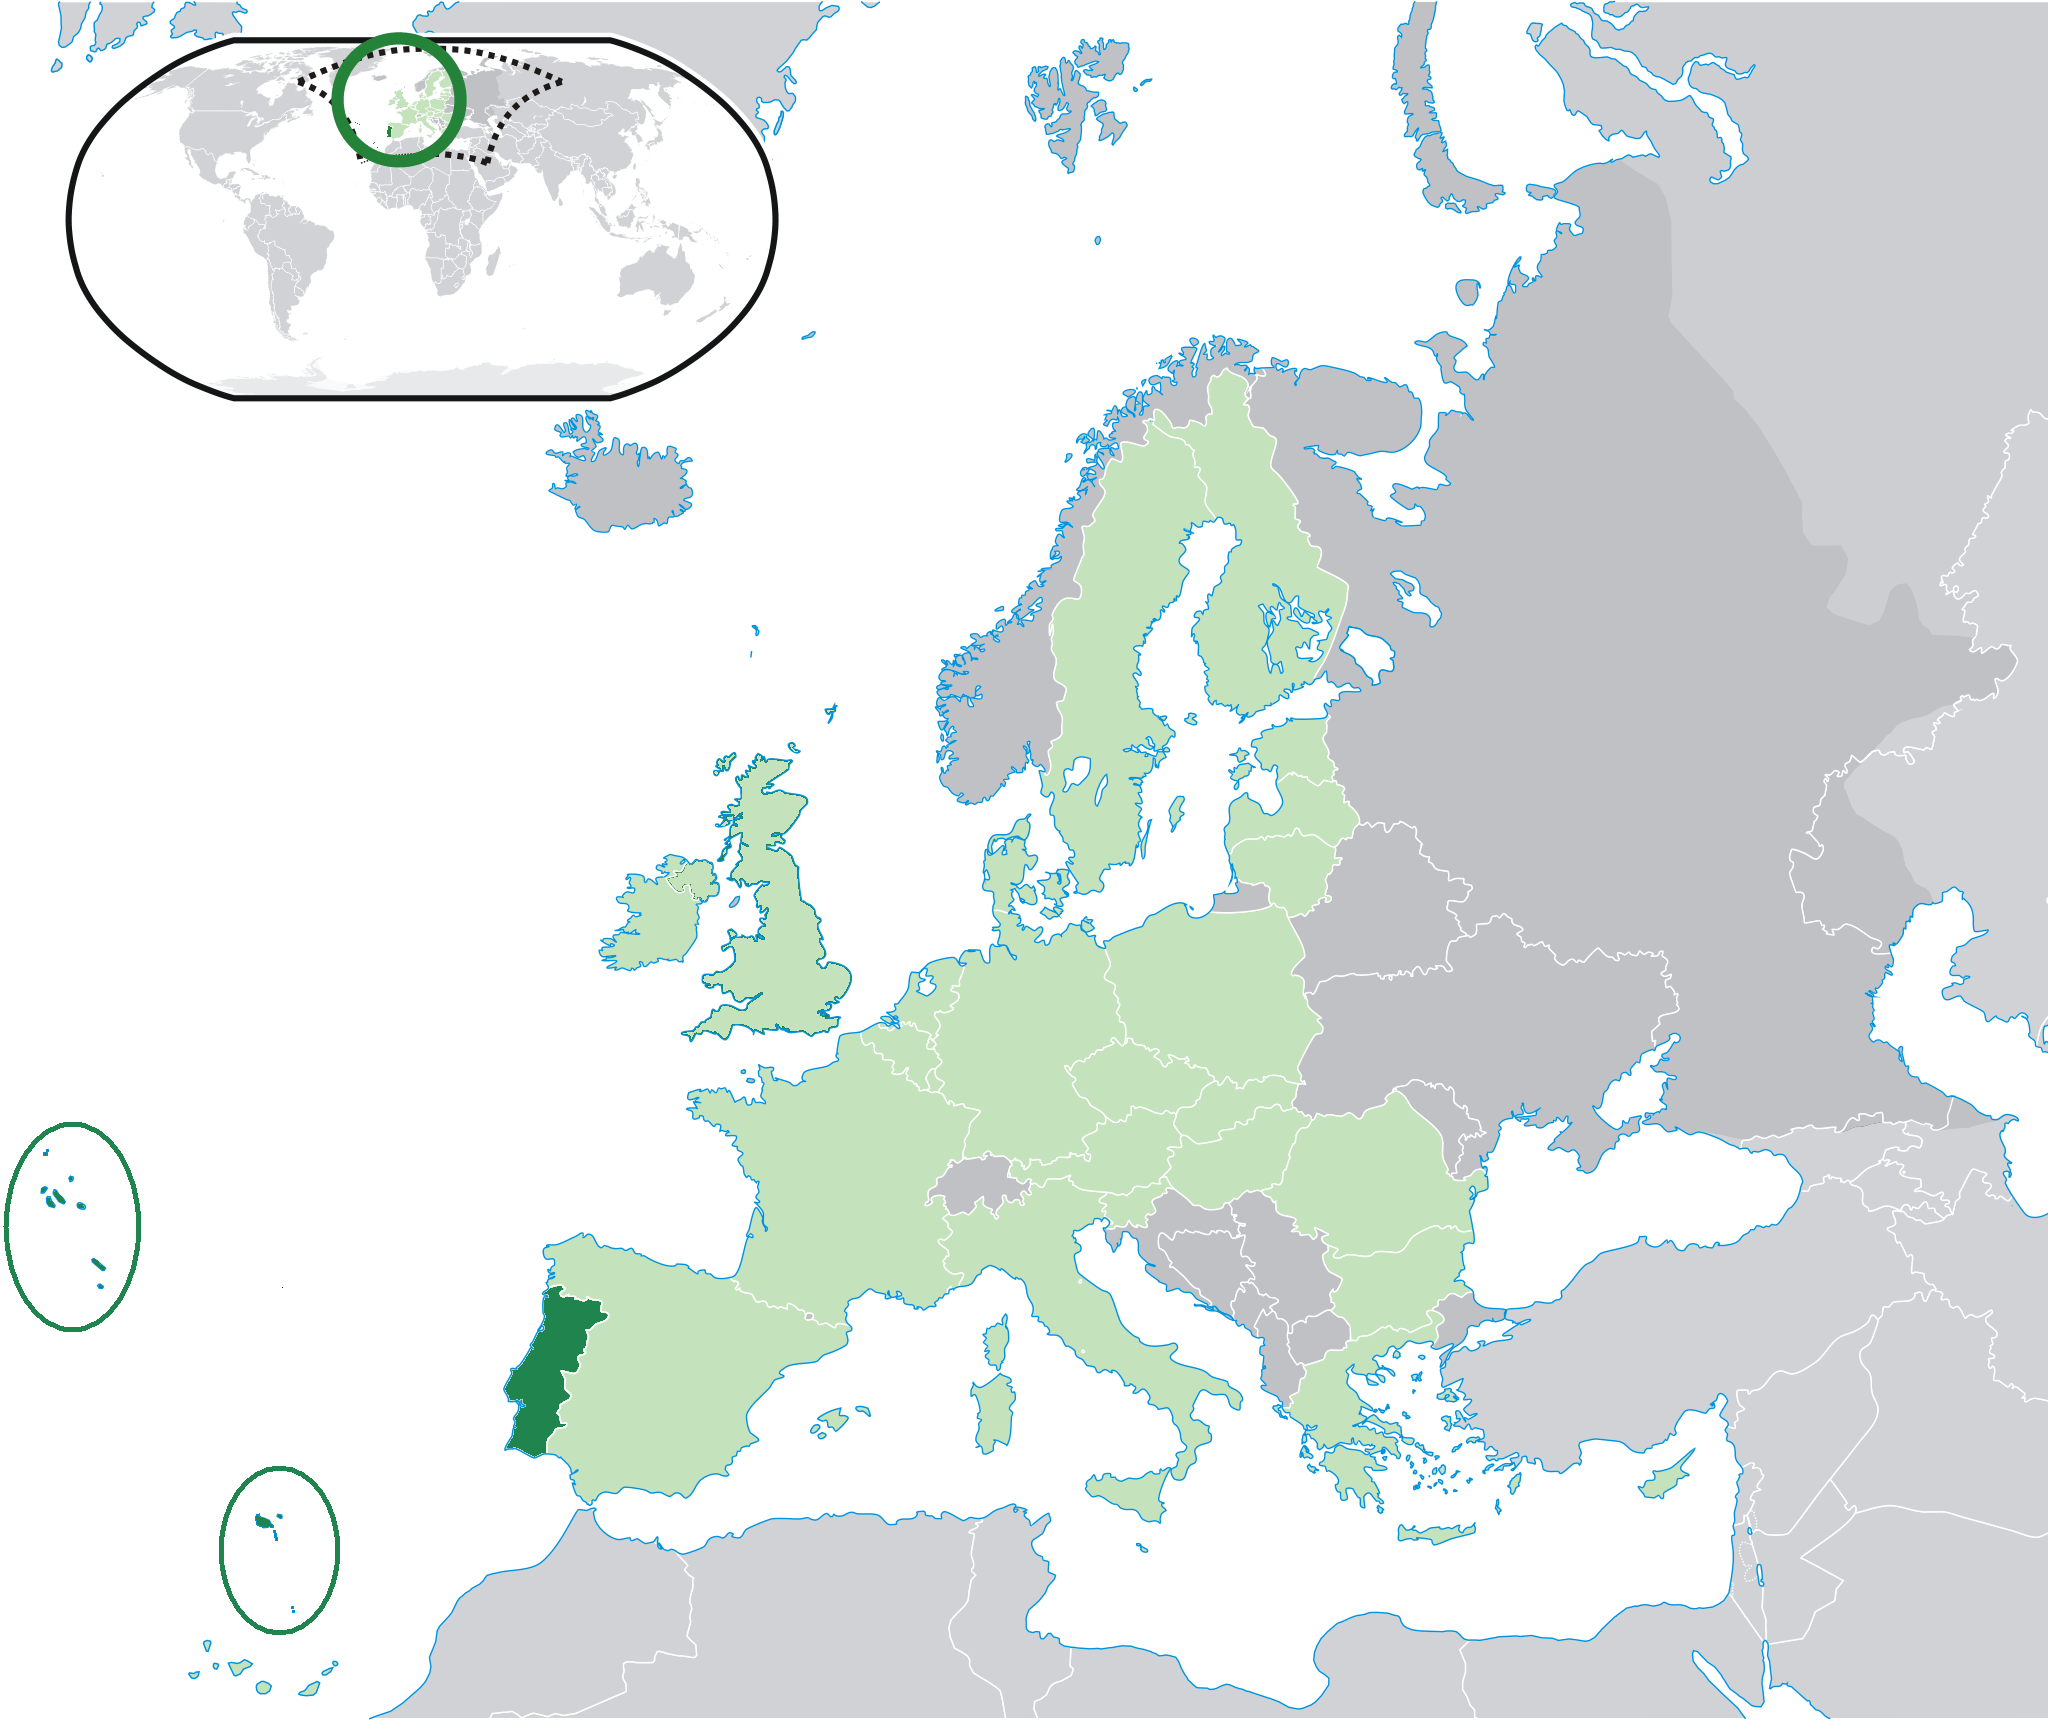 FileLocation Portugal EU Europepng Wikimedia Commons - Portugal map wikipedia